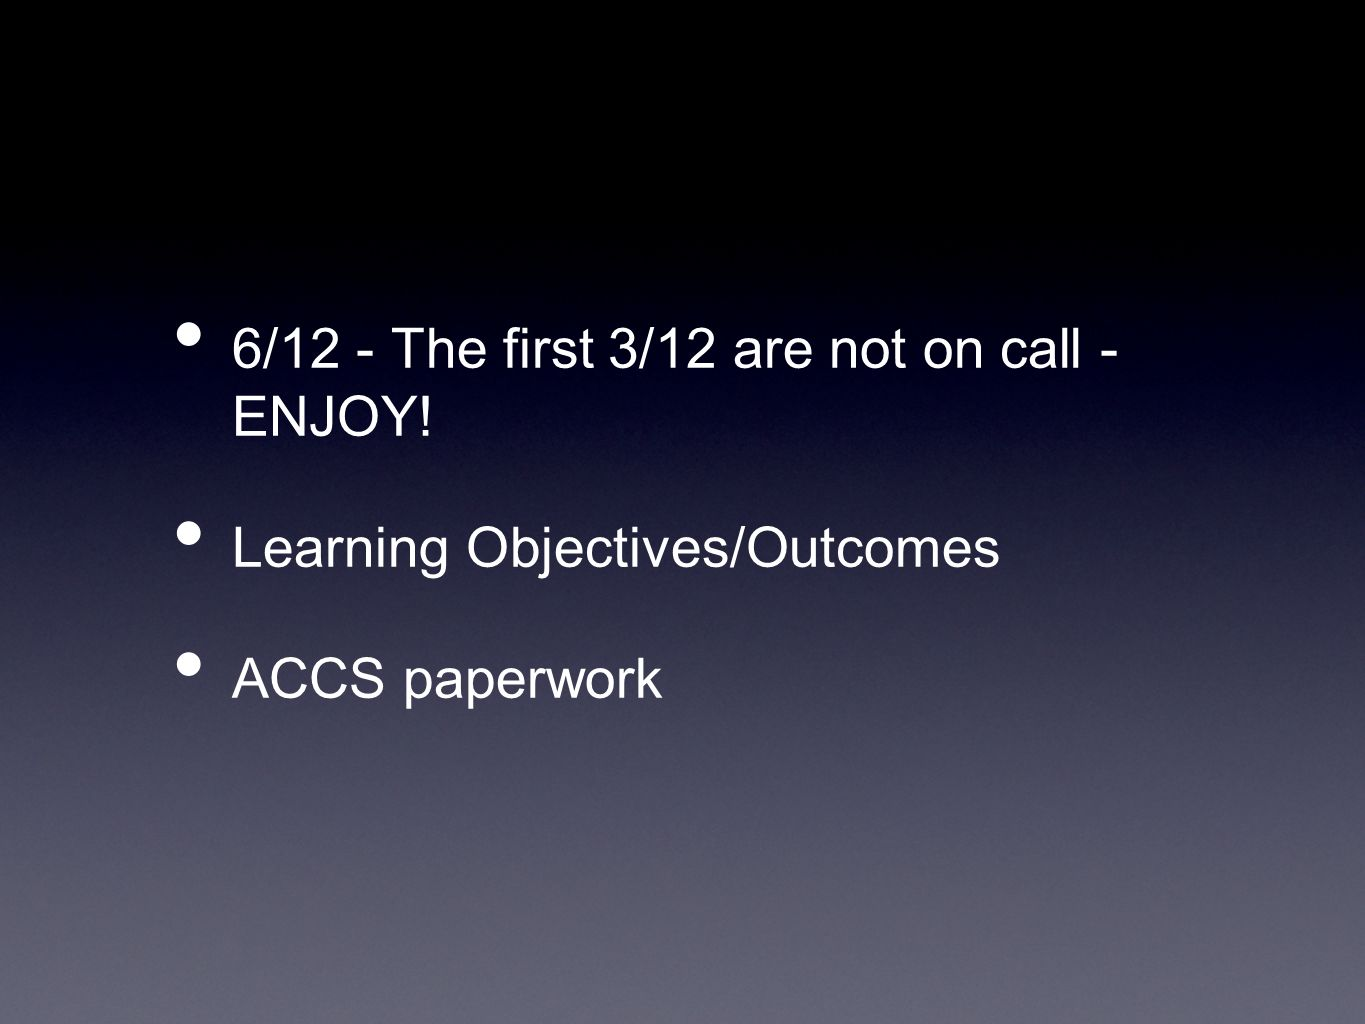 6/12 - The first 3/12 are not on call - ENJOY! Learning Objectives/Outcomes ACCS paperwork